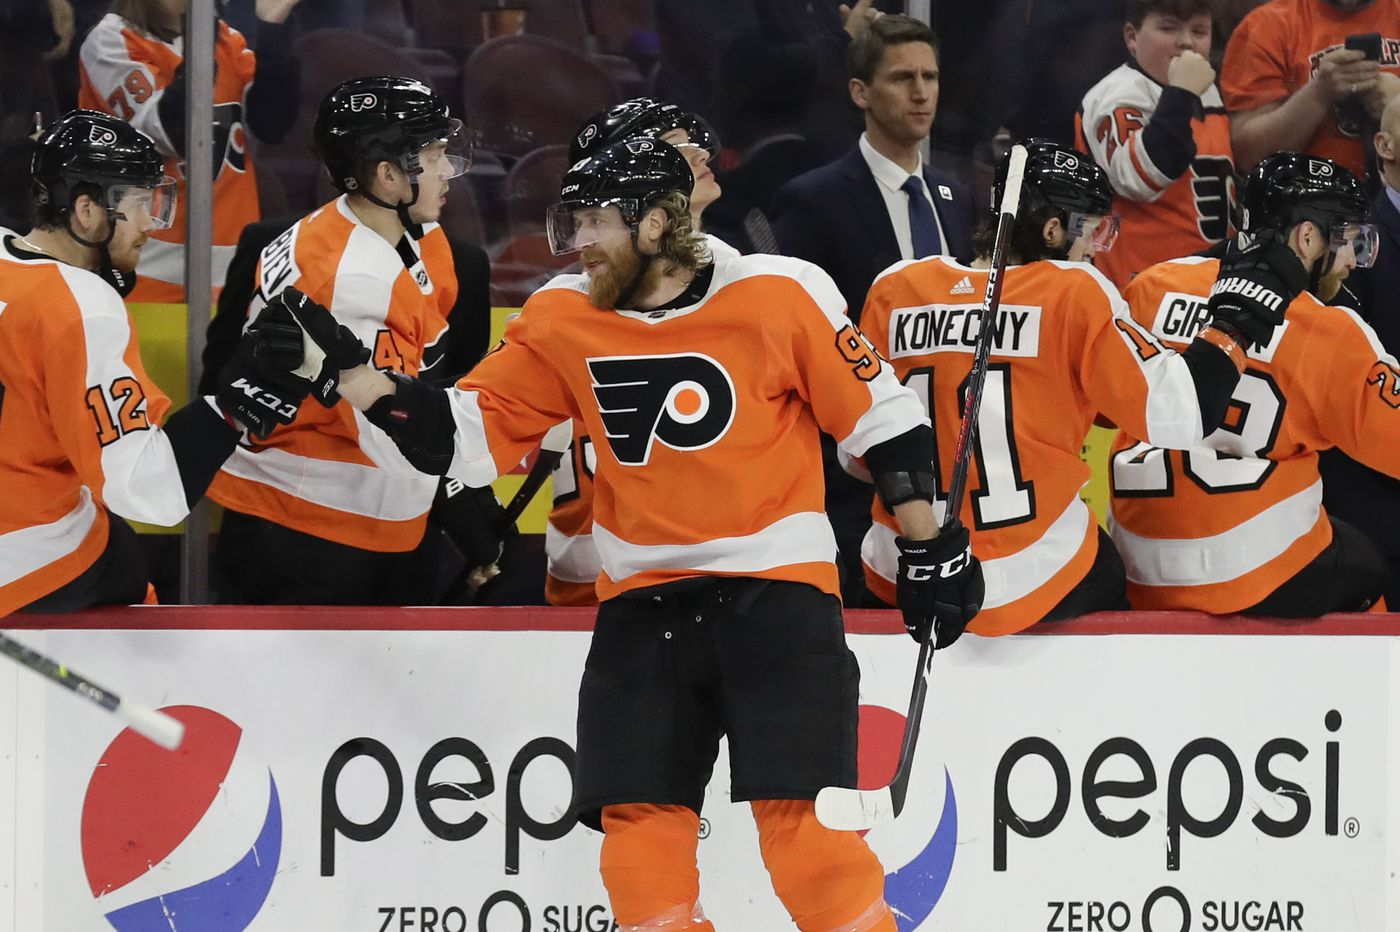 Flyers step into void left by Eagles | Sam Donnellon